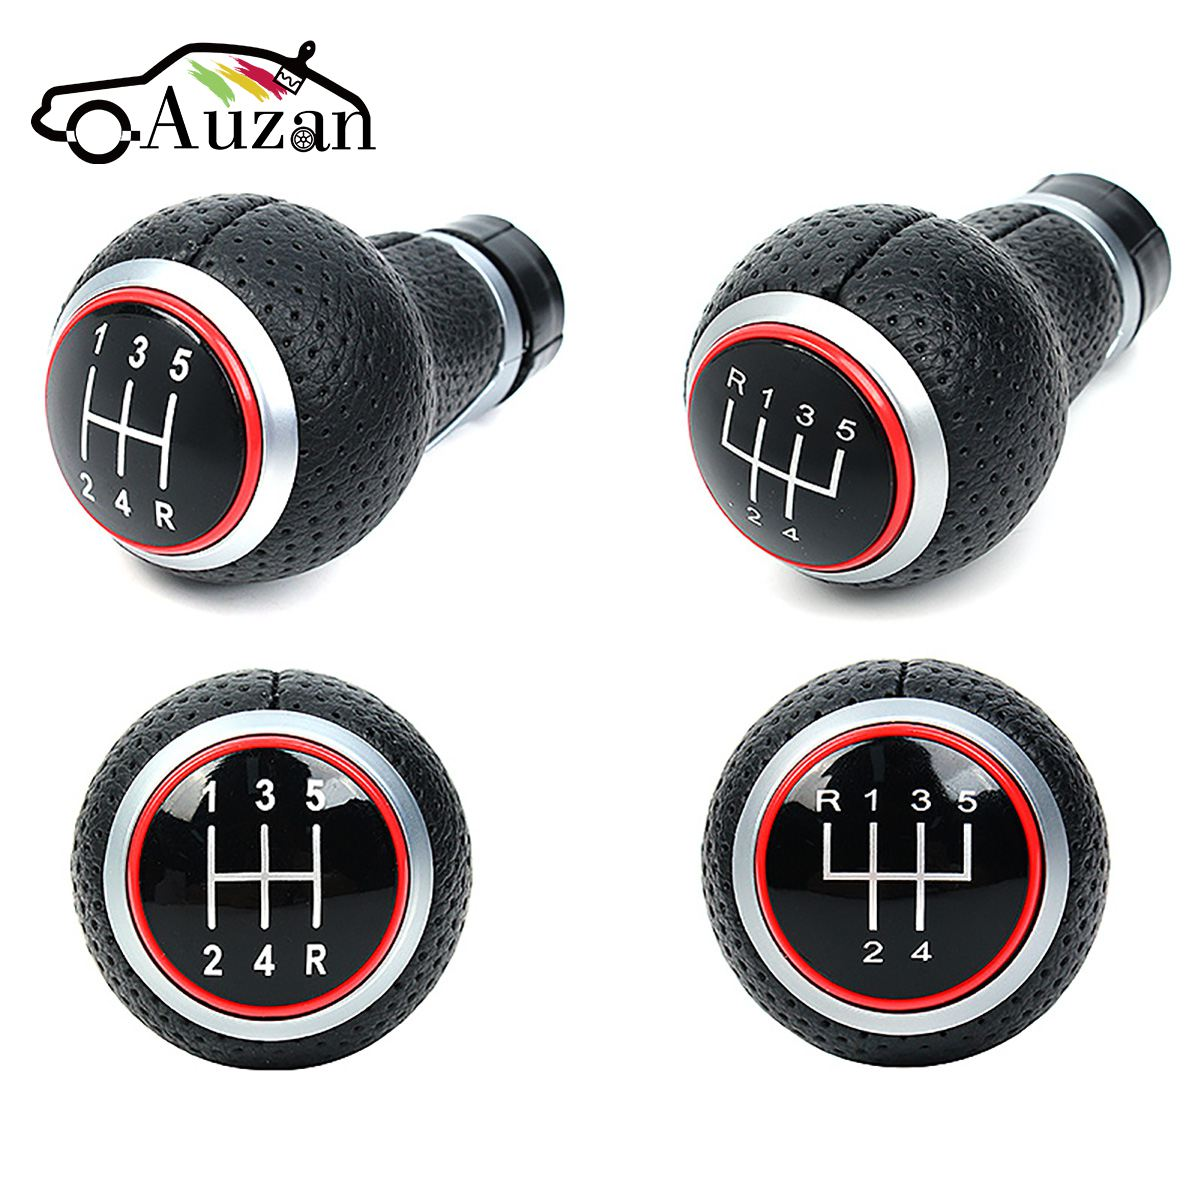 2 Types 5/6 Speed Gear Shift Knob For Audi A4 S4 B8 8K A5 8T Q5 8R S Line 2007-2015 Manual Leather Red Line